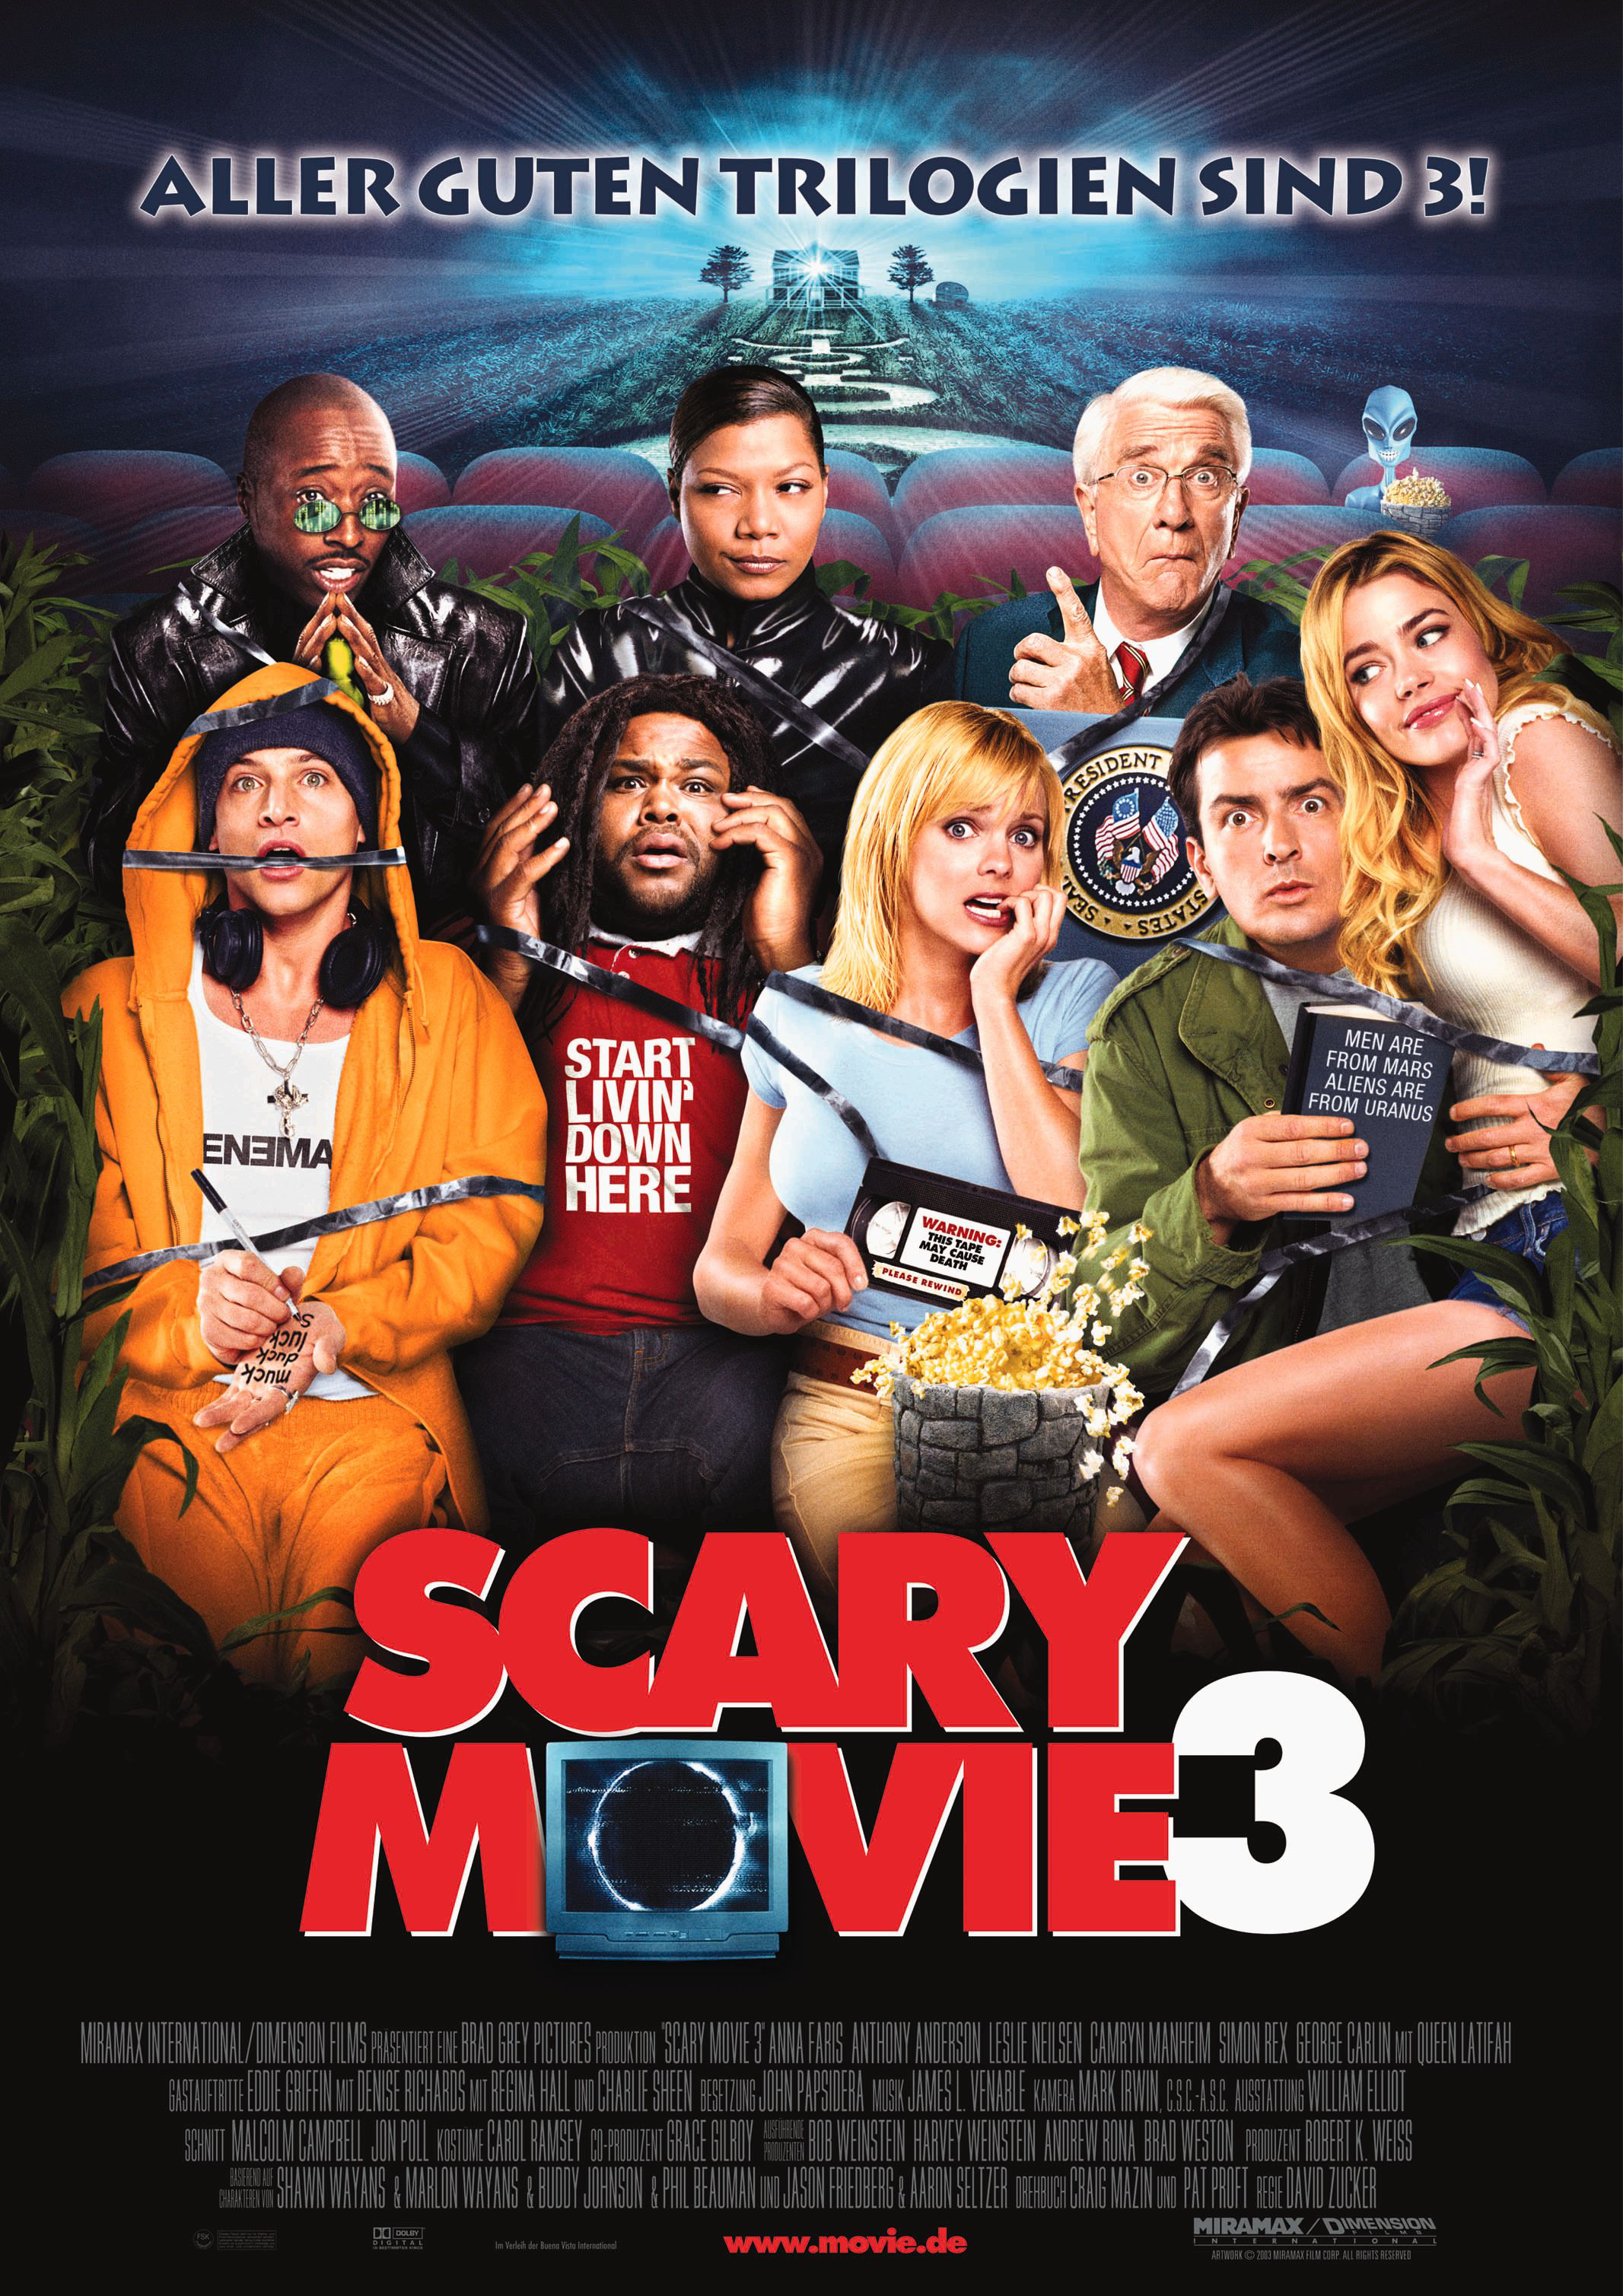 Plakat des Films: Scary Movie 3